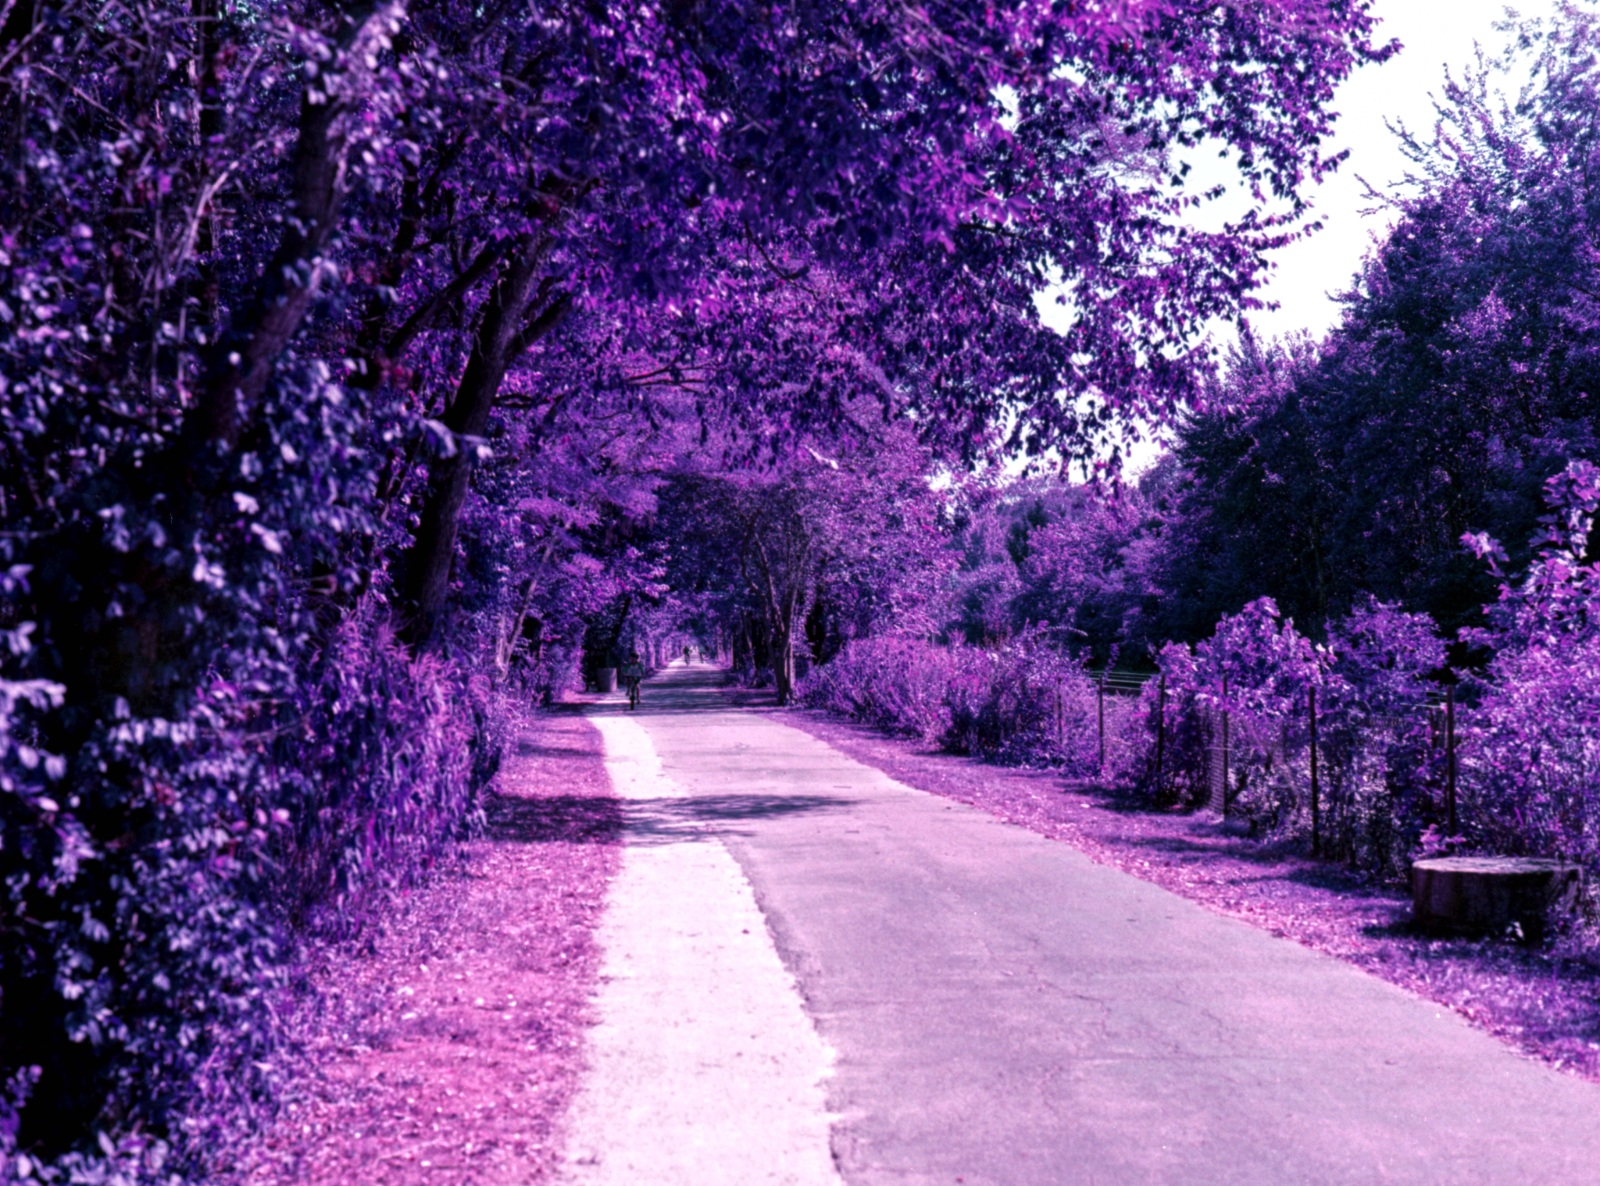 Green Bay Trail on Lomochrome Purple Film